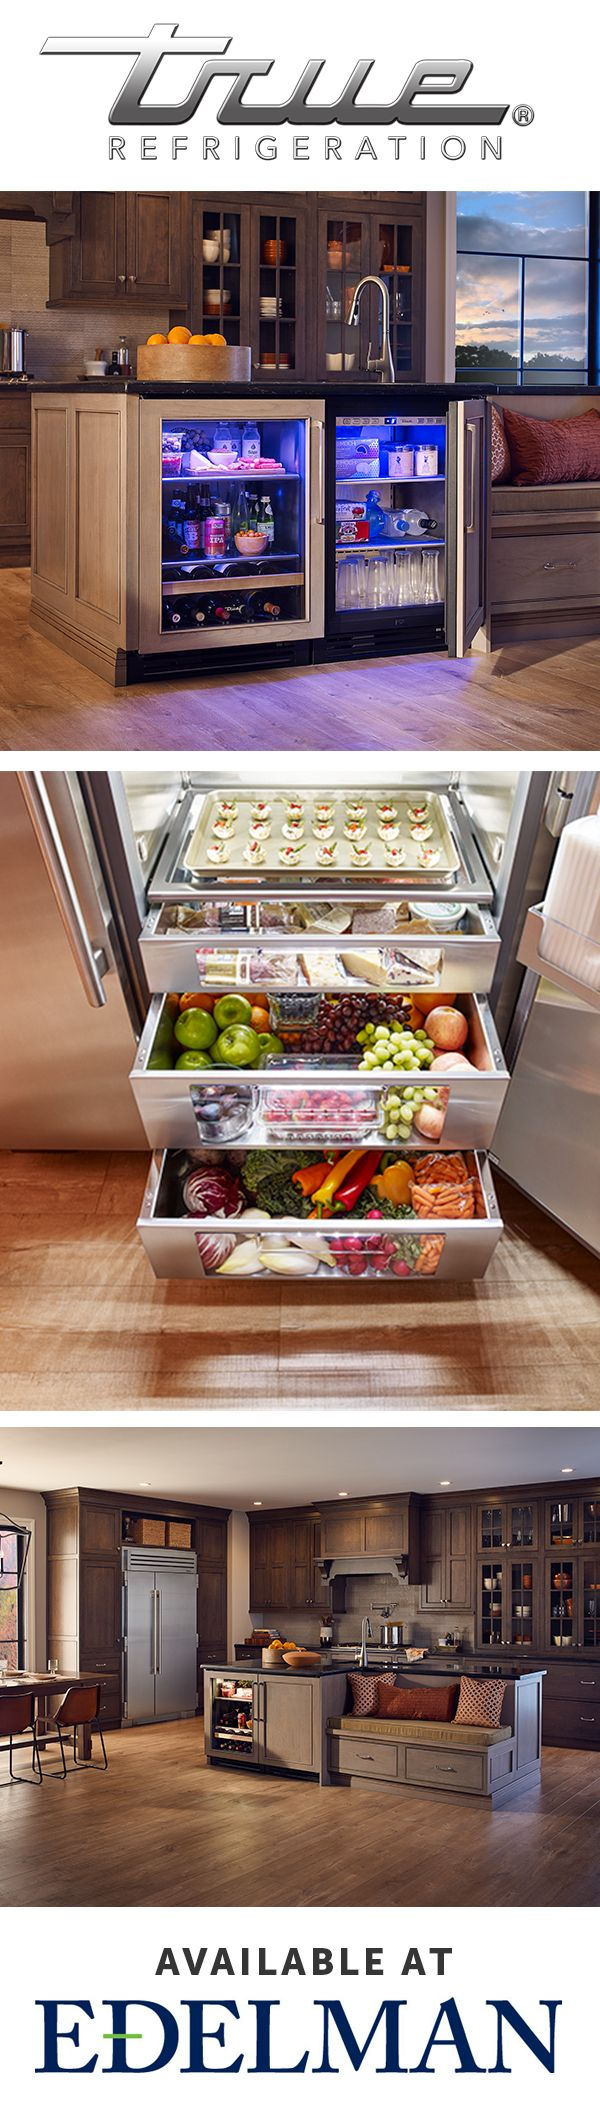 Integrate the refrigeration brand commercial kitchens have known and trusted for over 70 years into your dream kitchen. Available at Edelman.